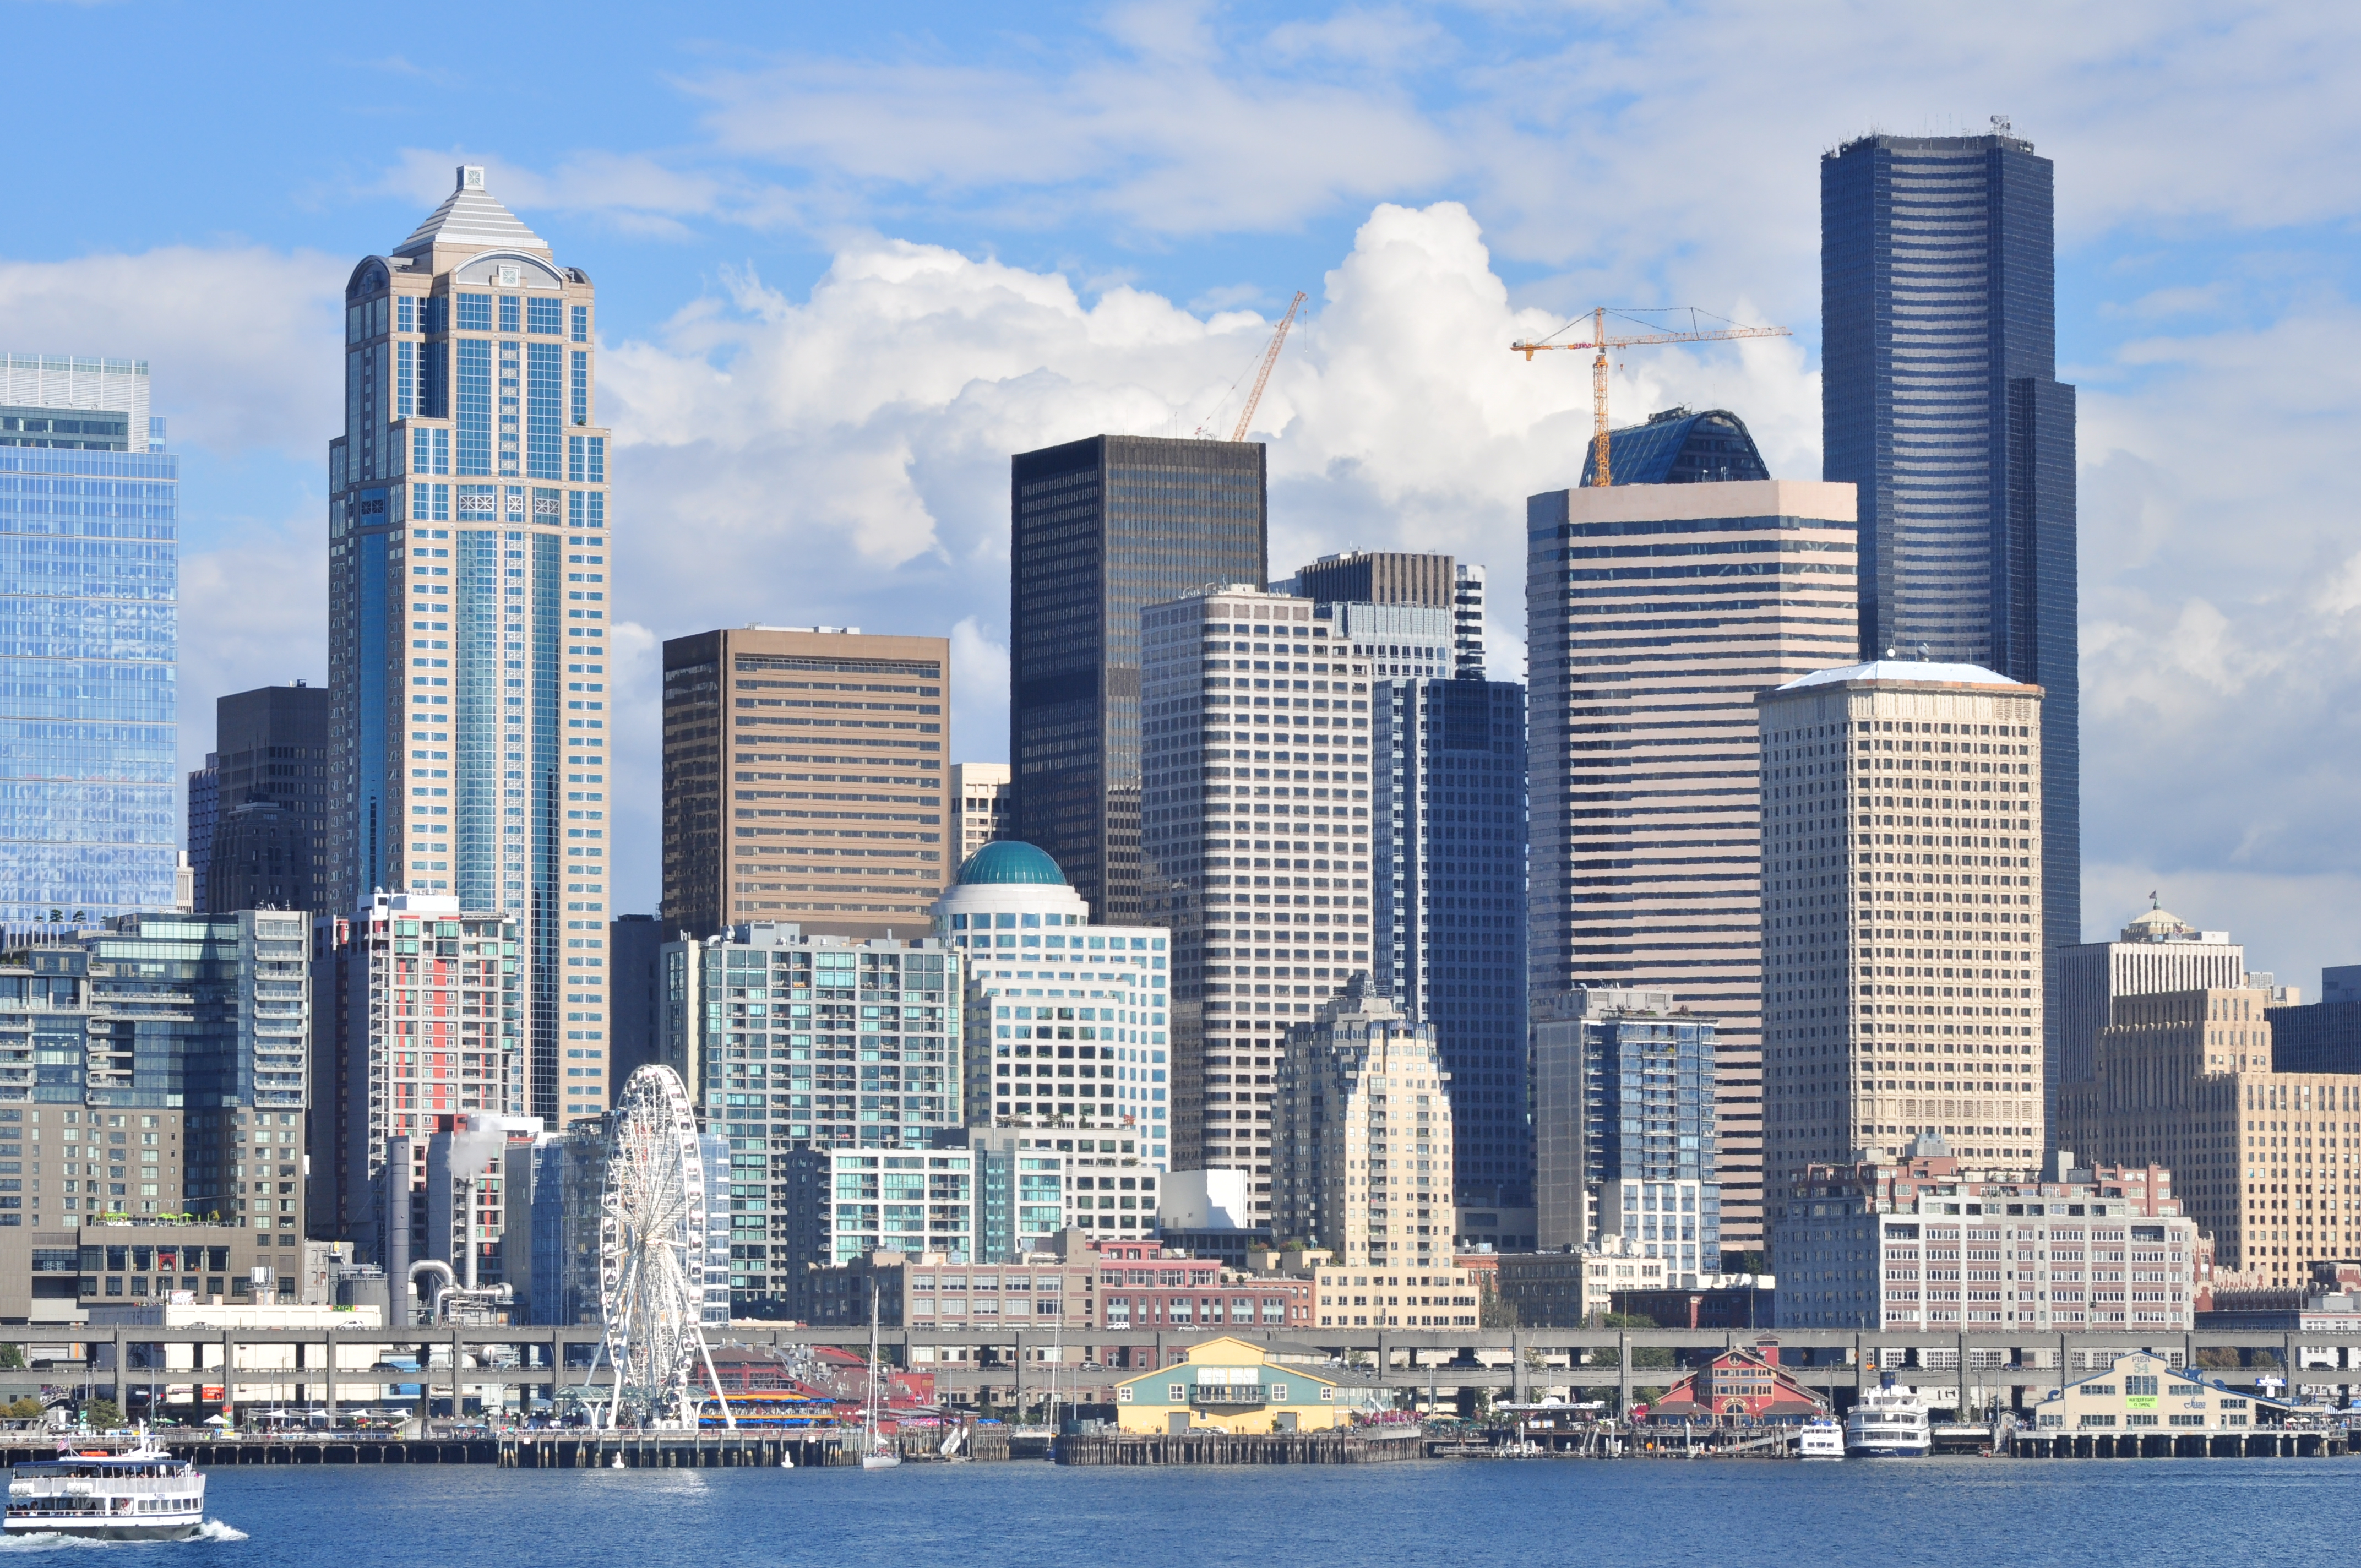 File:Downtown Seattle skyline from Elliott Bay 01.jpg - Wikimedia ...